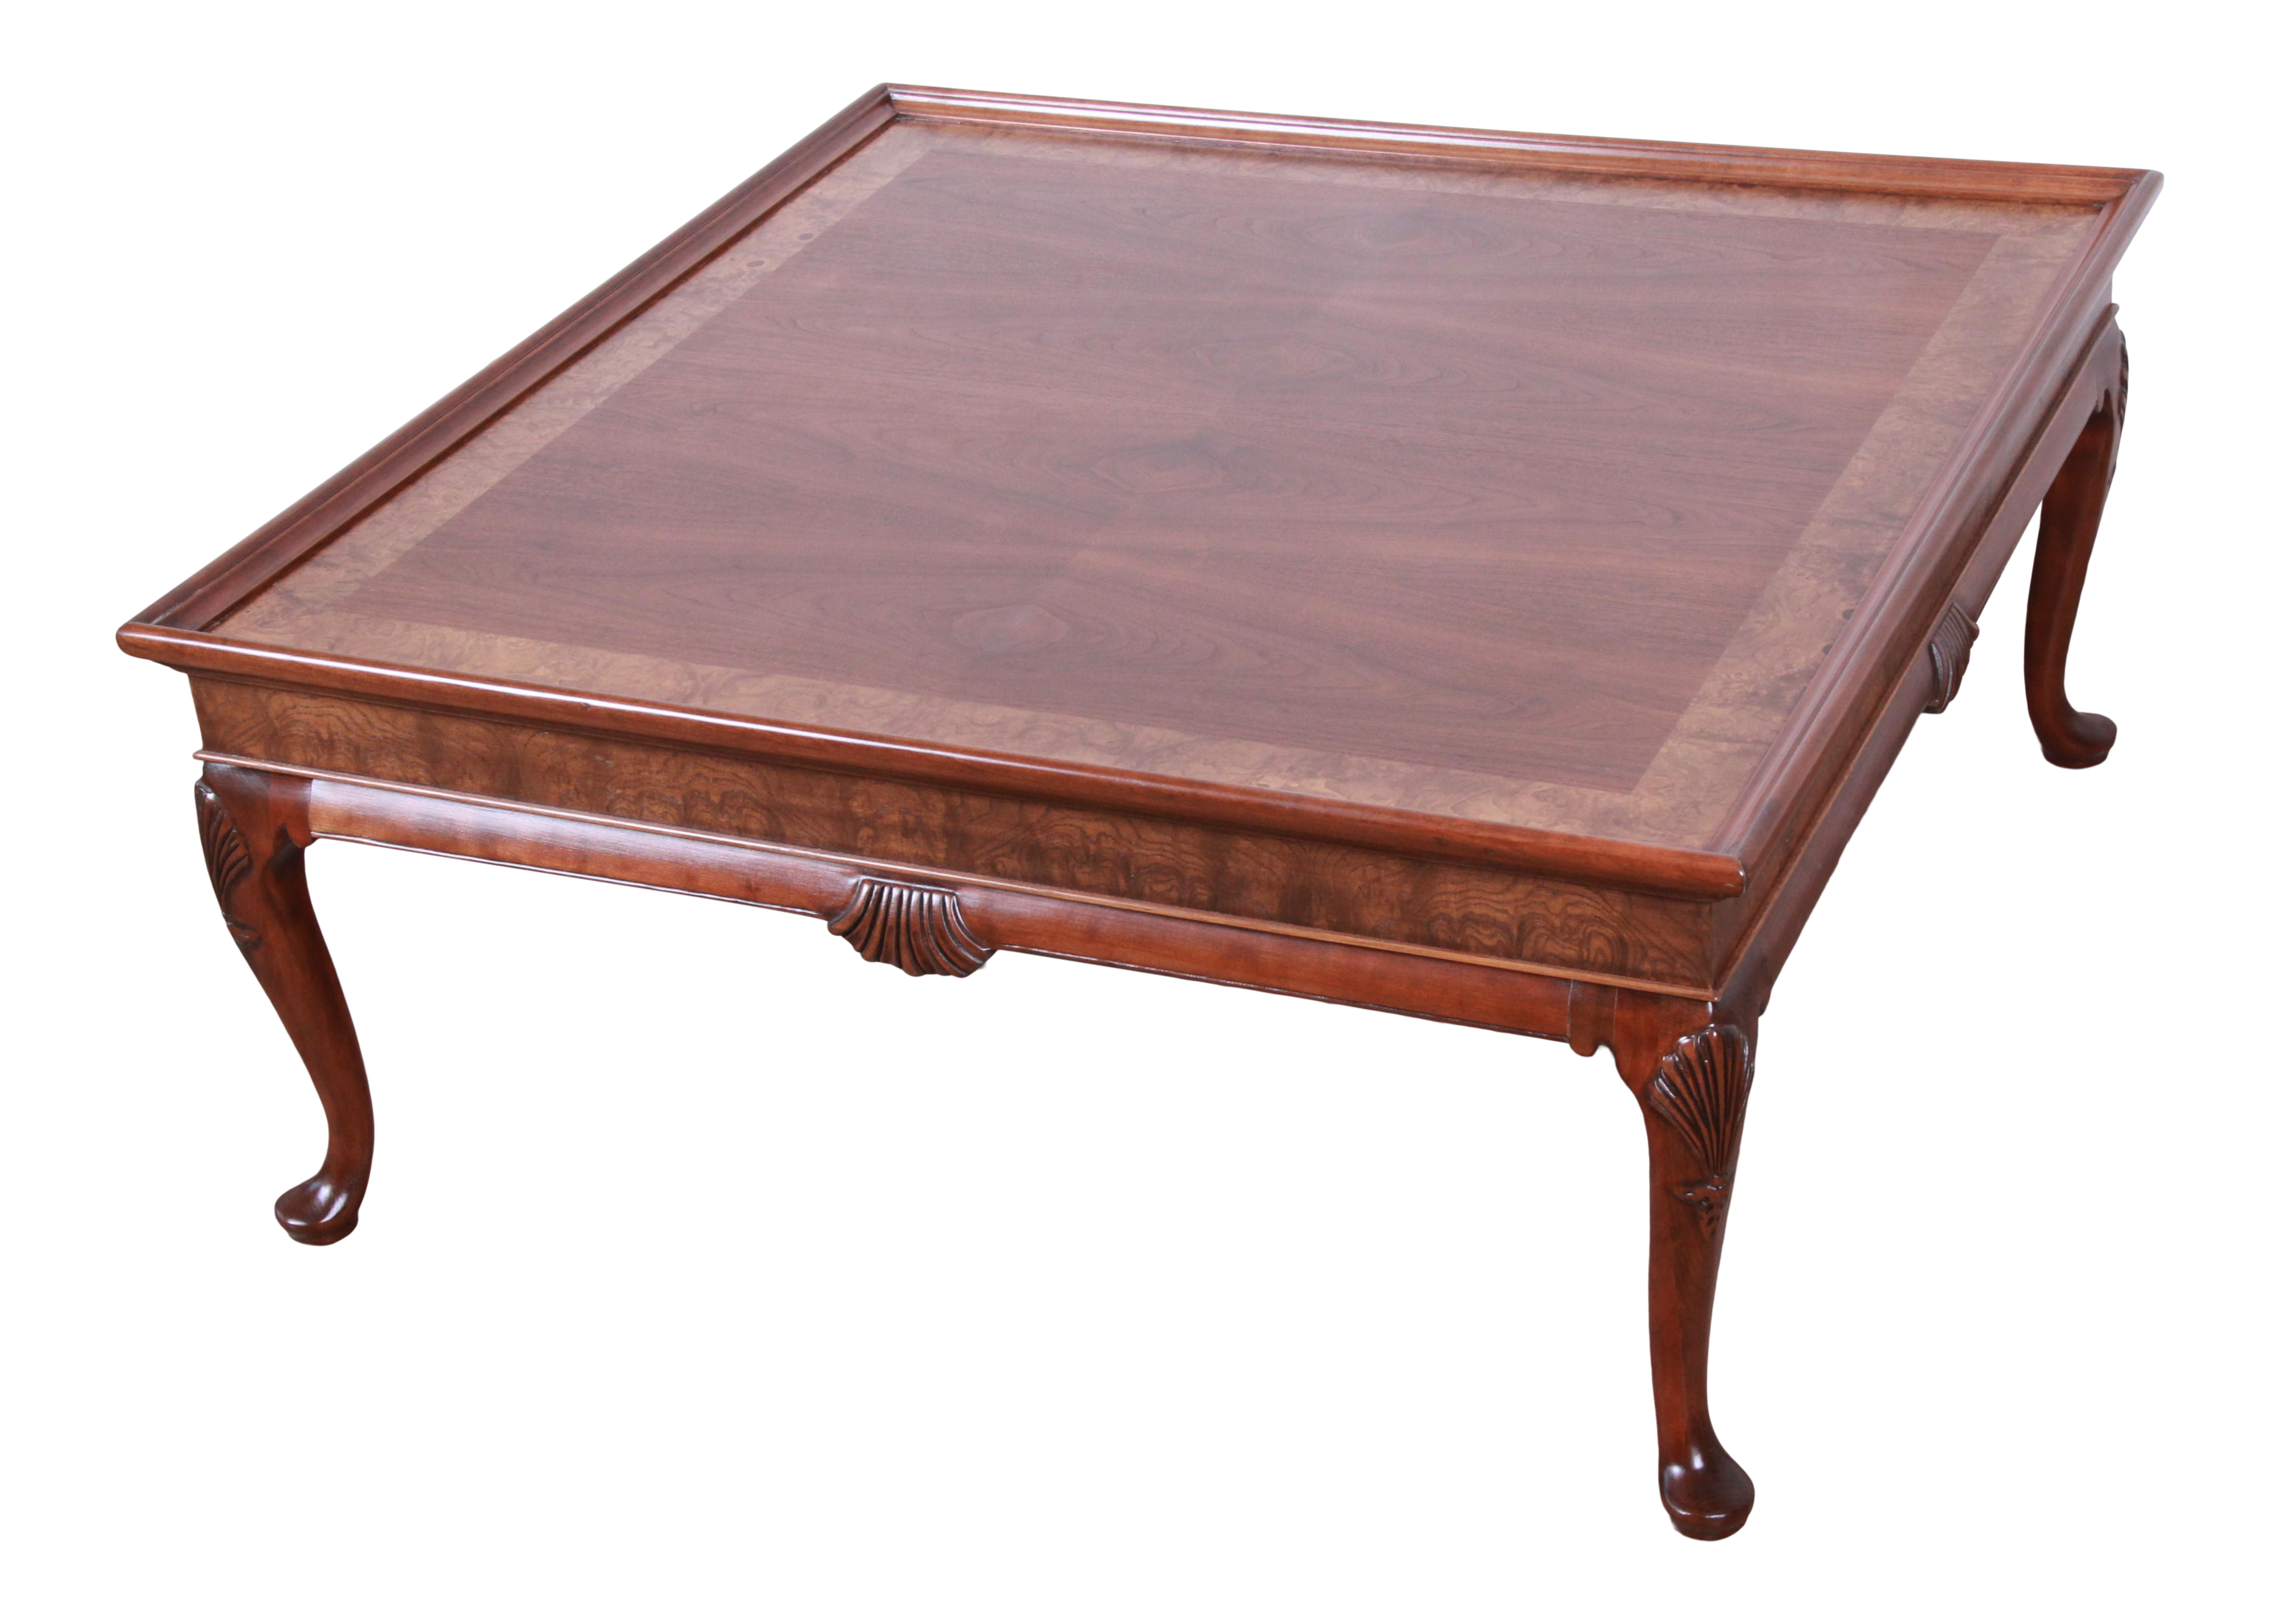 Picture of: Baker Furniture Queen Anne Walnut And Burl Wood Large Square Coffee Table Newly Refinished Chairish